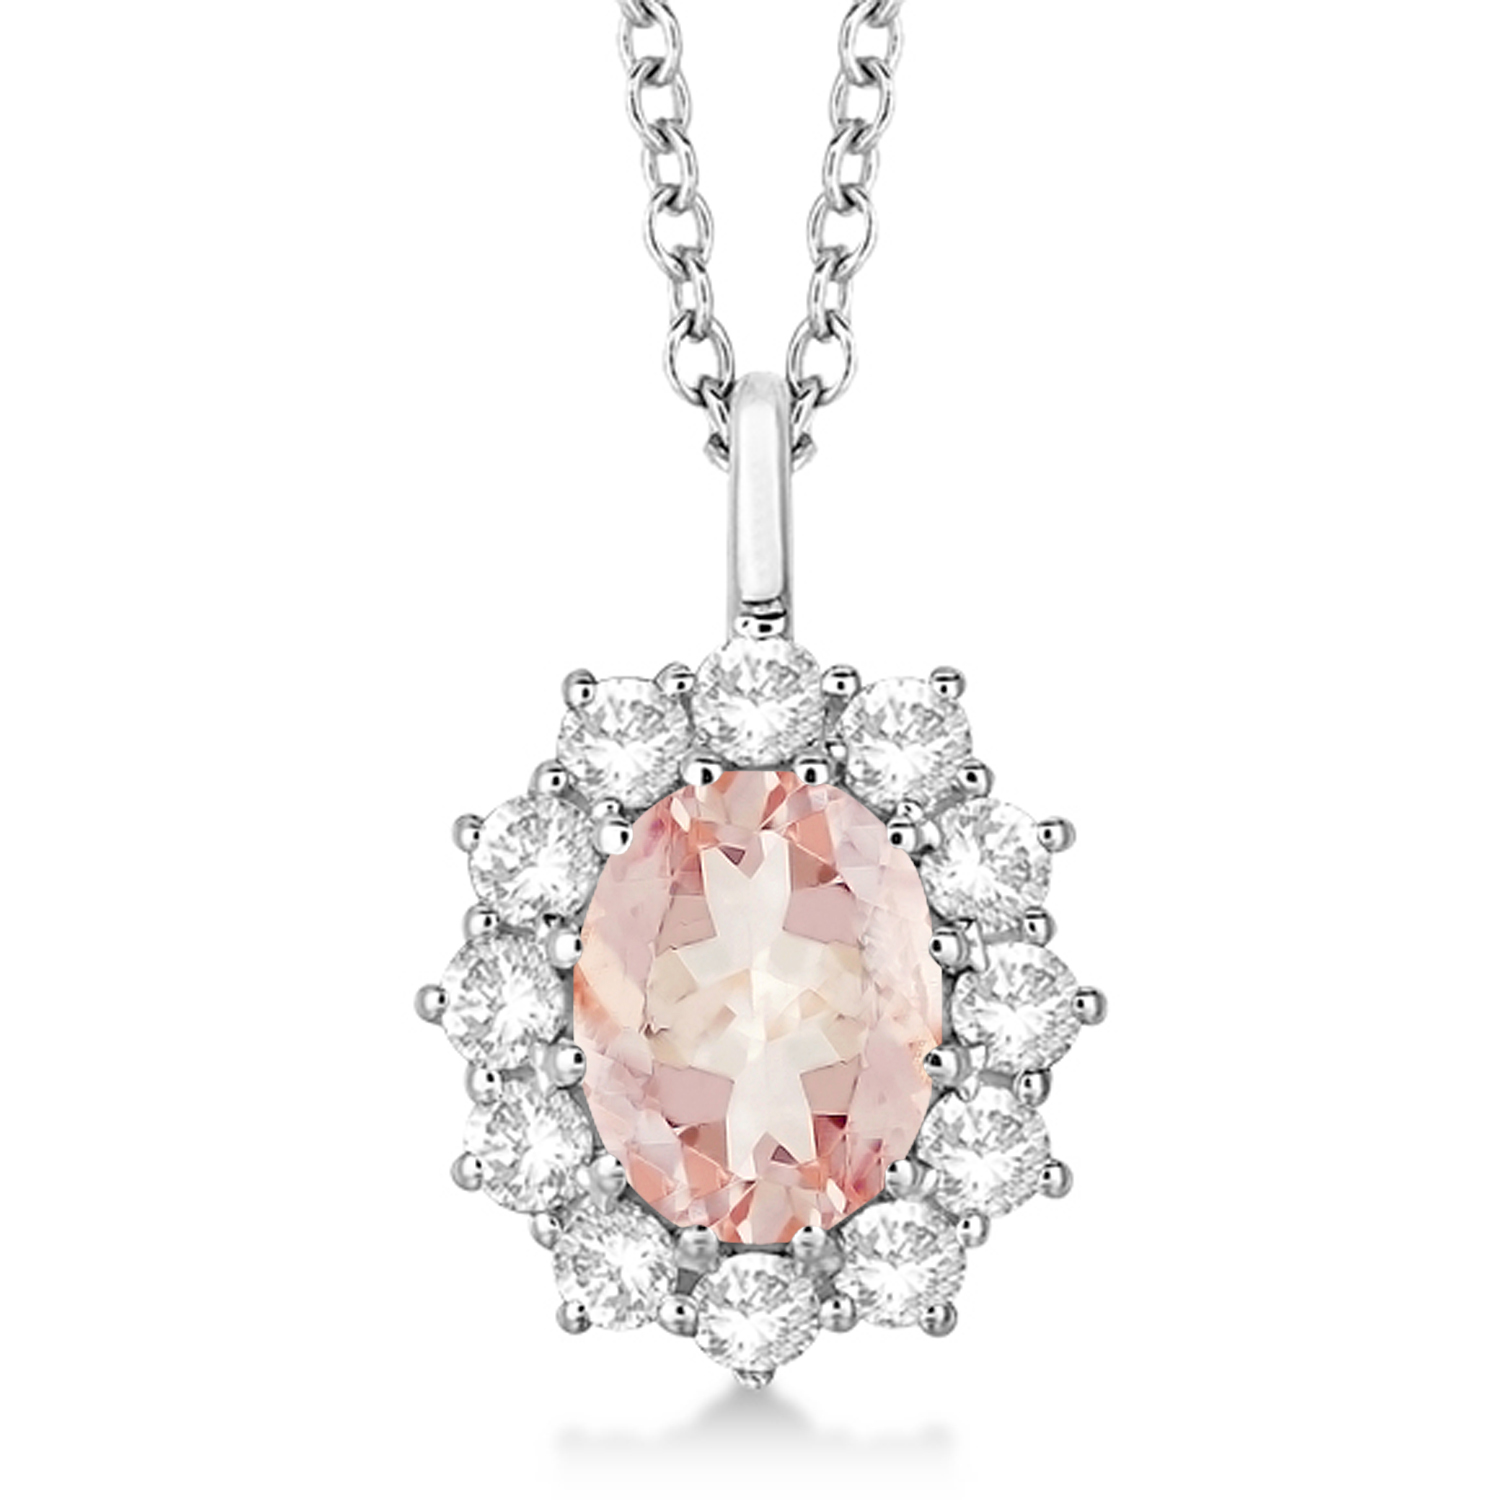 Oval Morganite and Diamond Pendant Necklace 14k White Gold (3.60ctw)